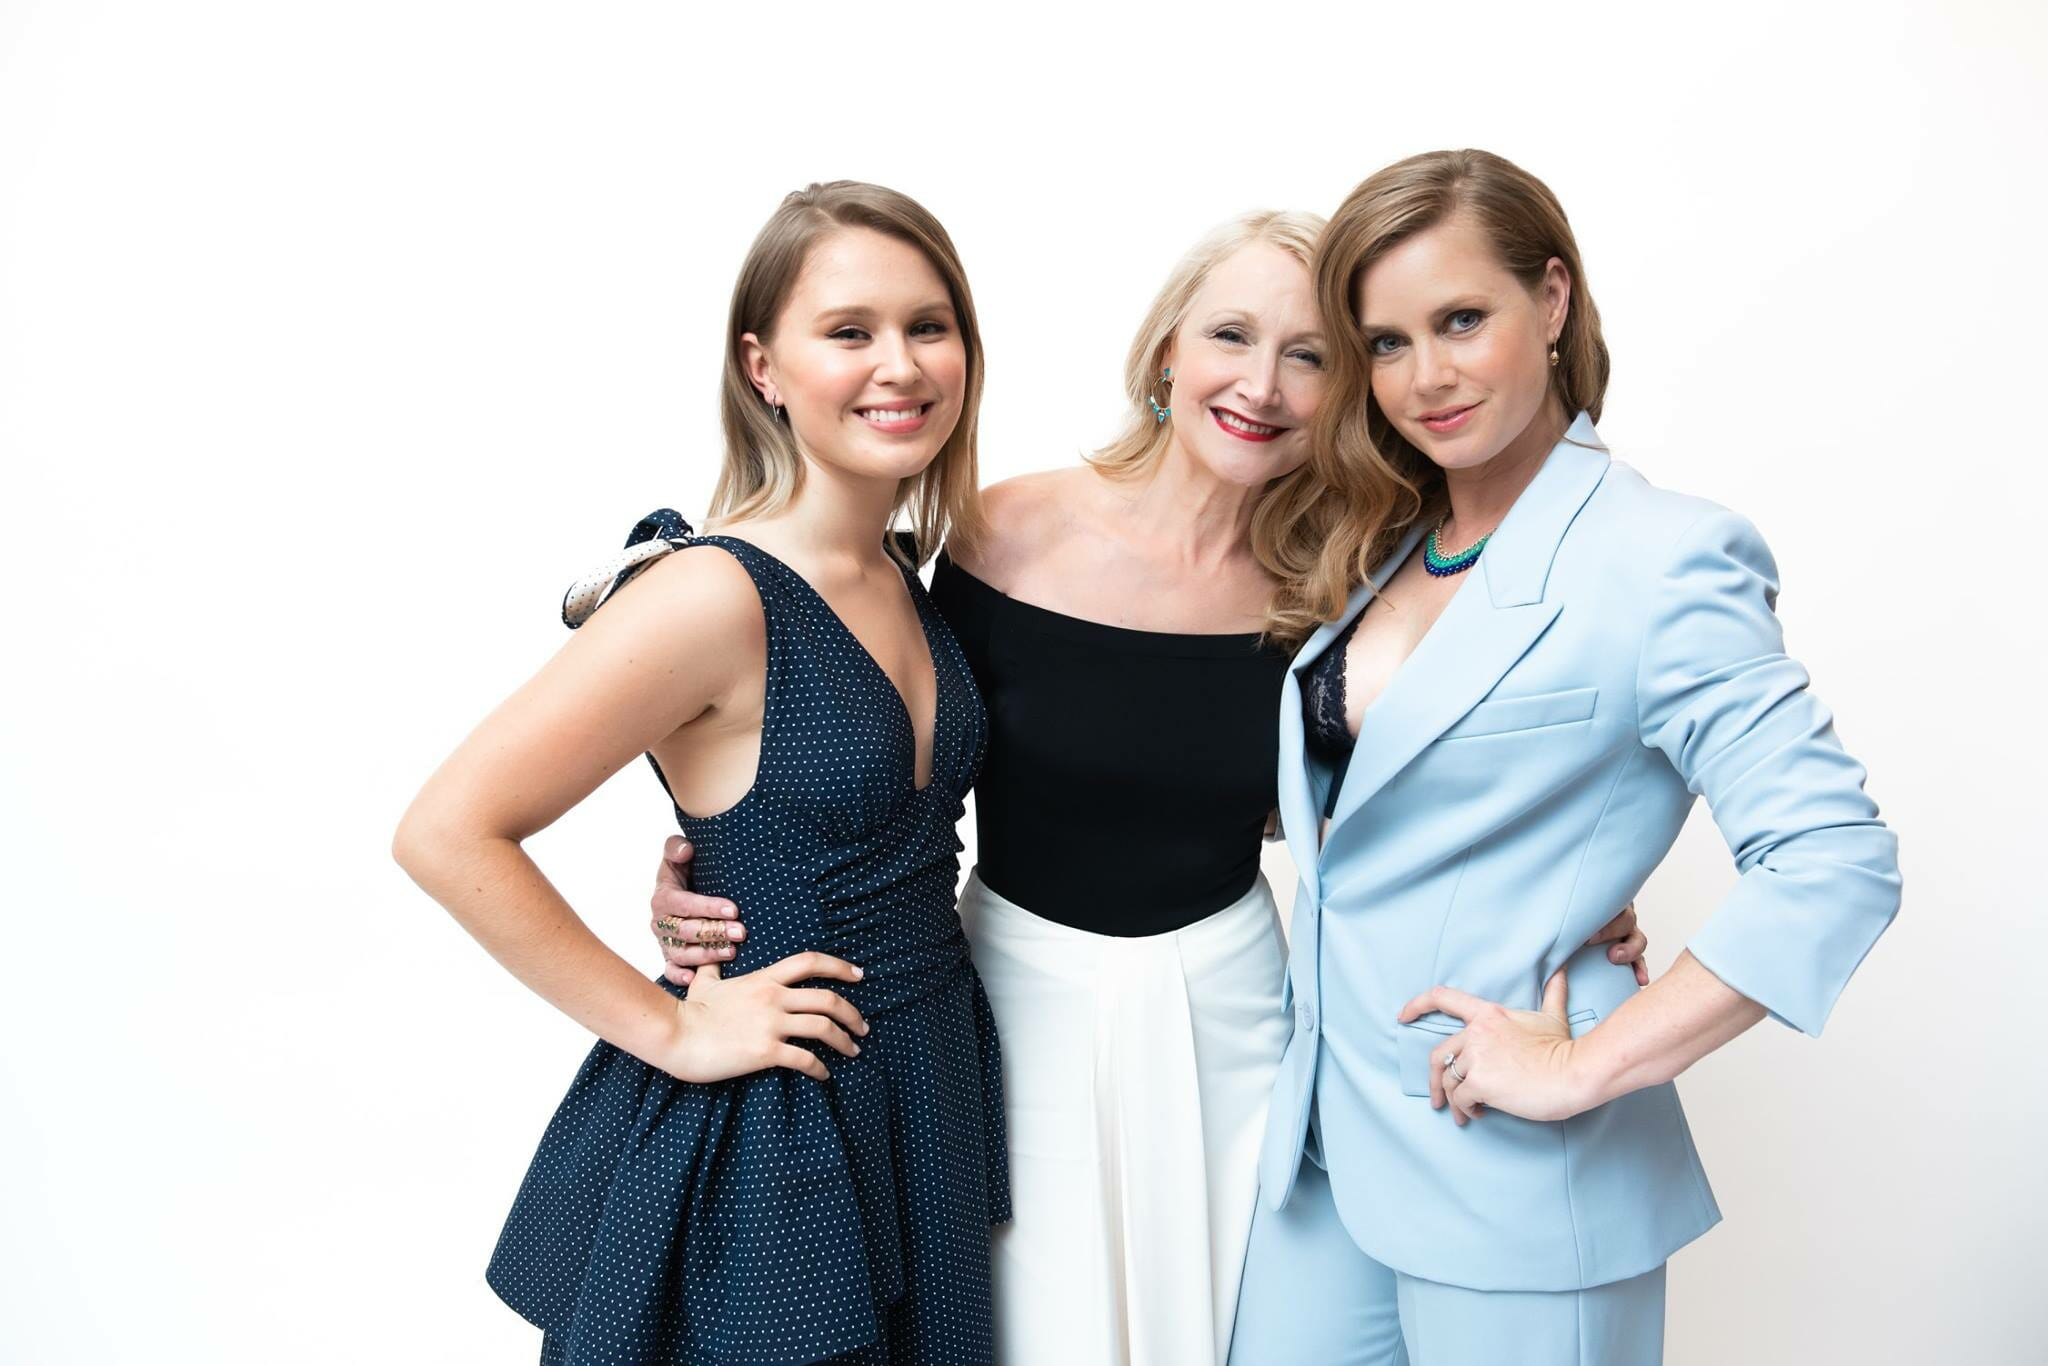 The cast of the show Sharp Objects